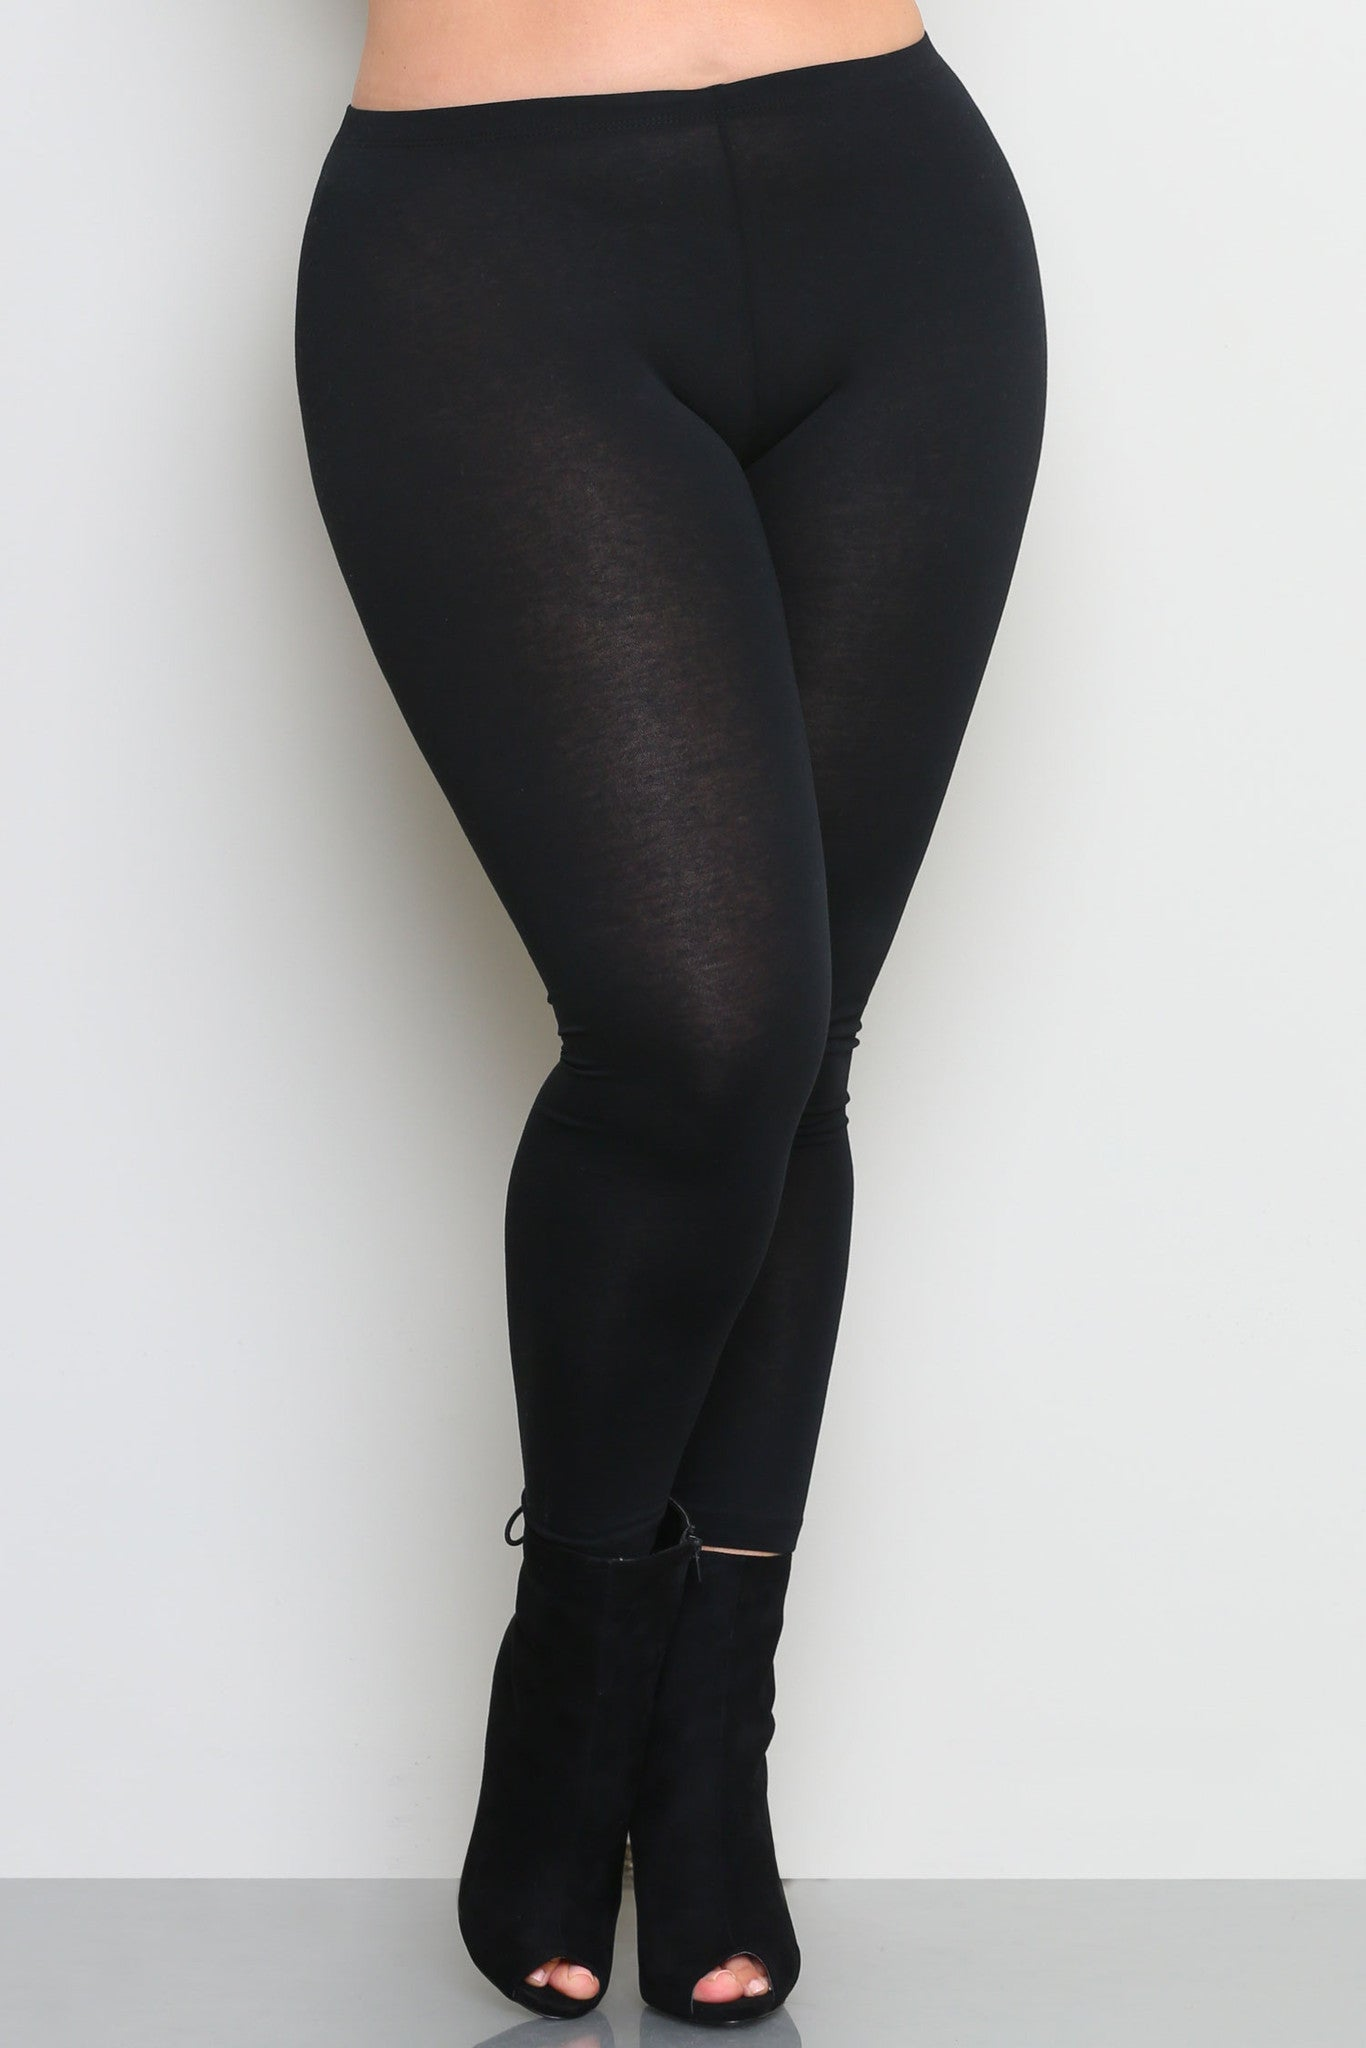 MARIA LEGGINGS - Glam Envy - 1